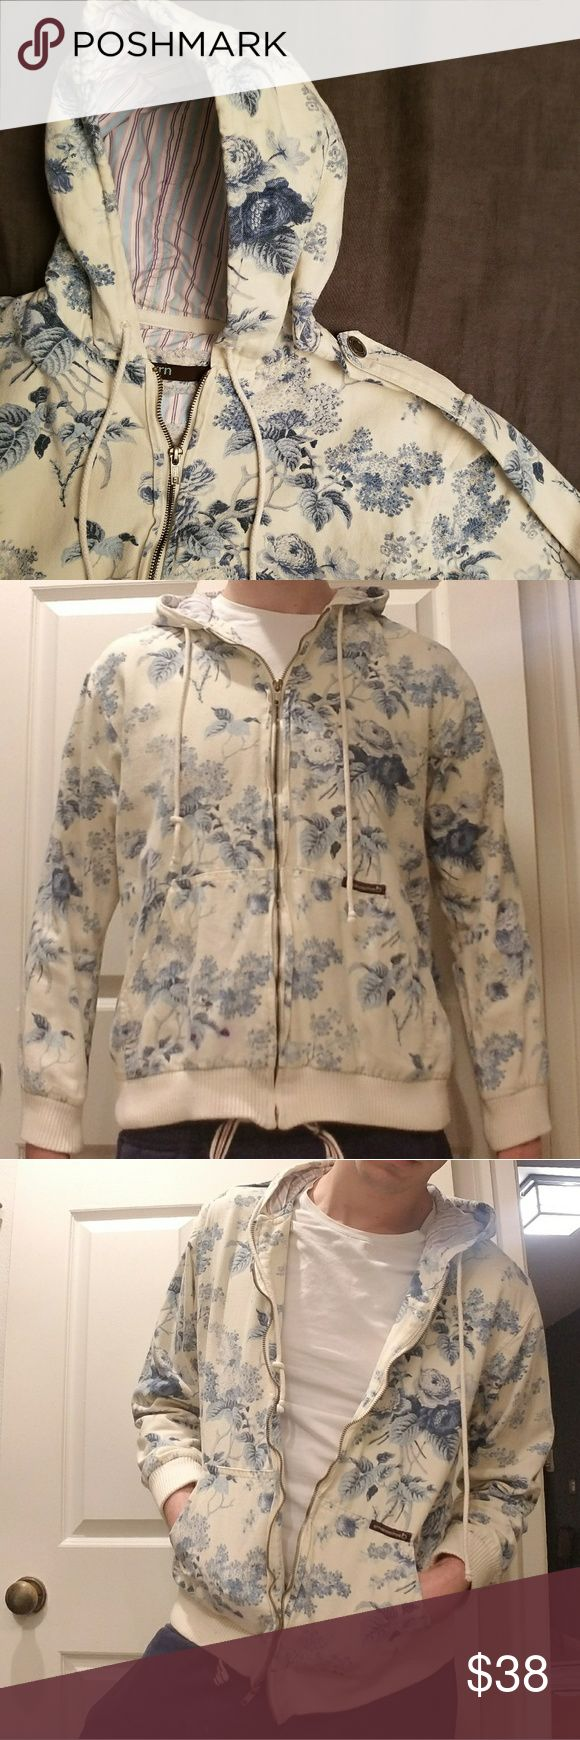 grnappletree  Floral Print Canvas Zip Hoodie (m) Oyster white canvas zip hoodie with blue toile floral print.   This hoodie is a fusion of vintage & modern, done in the way only this unique brand can. The ornate Waverly fabric features flowers and leaves offset by military style shoulder straps. The hood is lined with contrast fabric, and all hardware is silver.   **There is a small blue ink stain on the front right pocket (last image). This stain actually pops much more in the image than it…